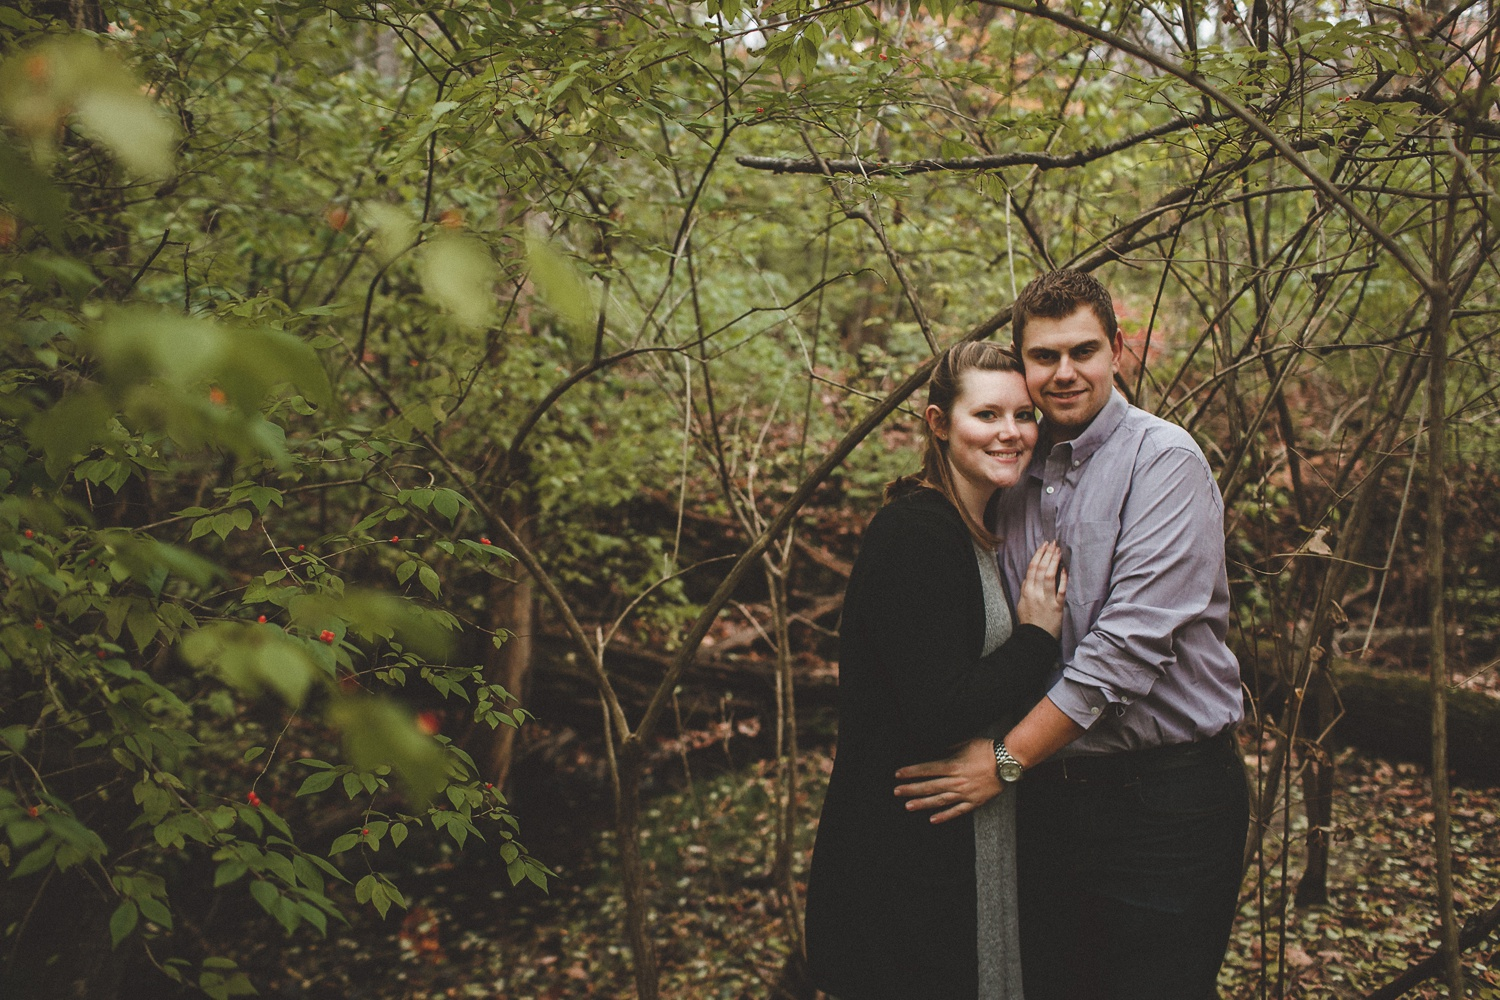 rock_cut_state_park_rockford_IL_engagement_photographer_0025.jpg